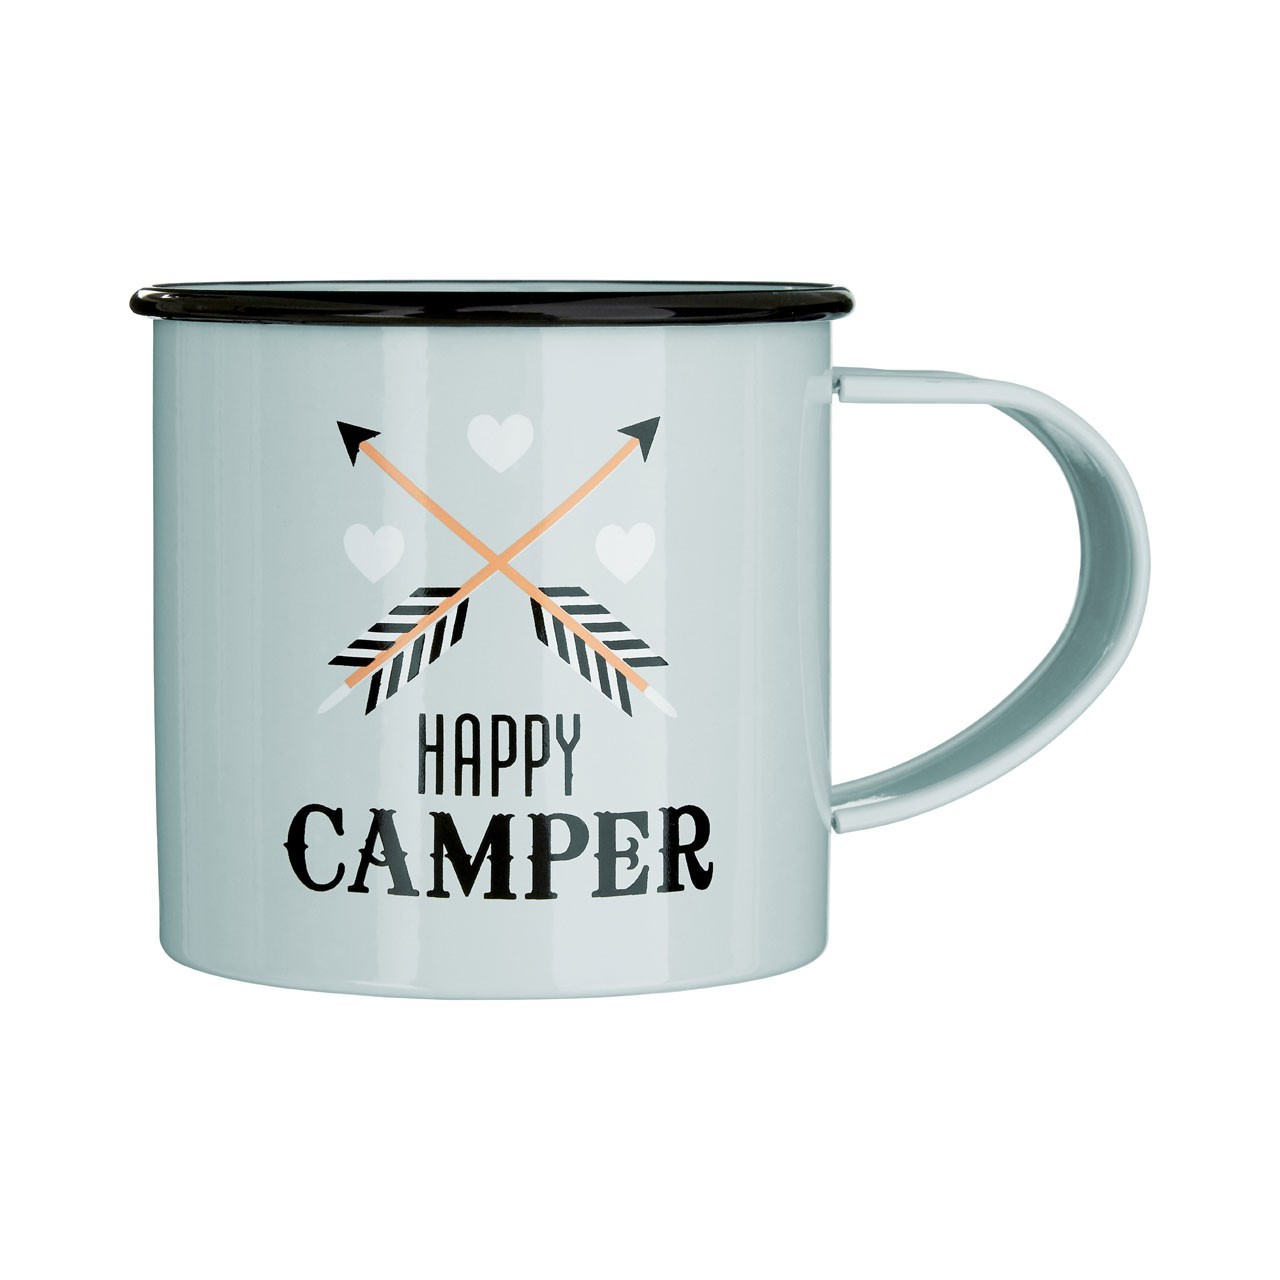 Prime Furnishing Galvanised Steel Happy Camper Mugs - Set Of 6